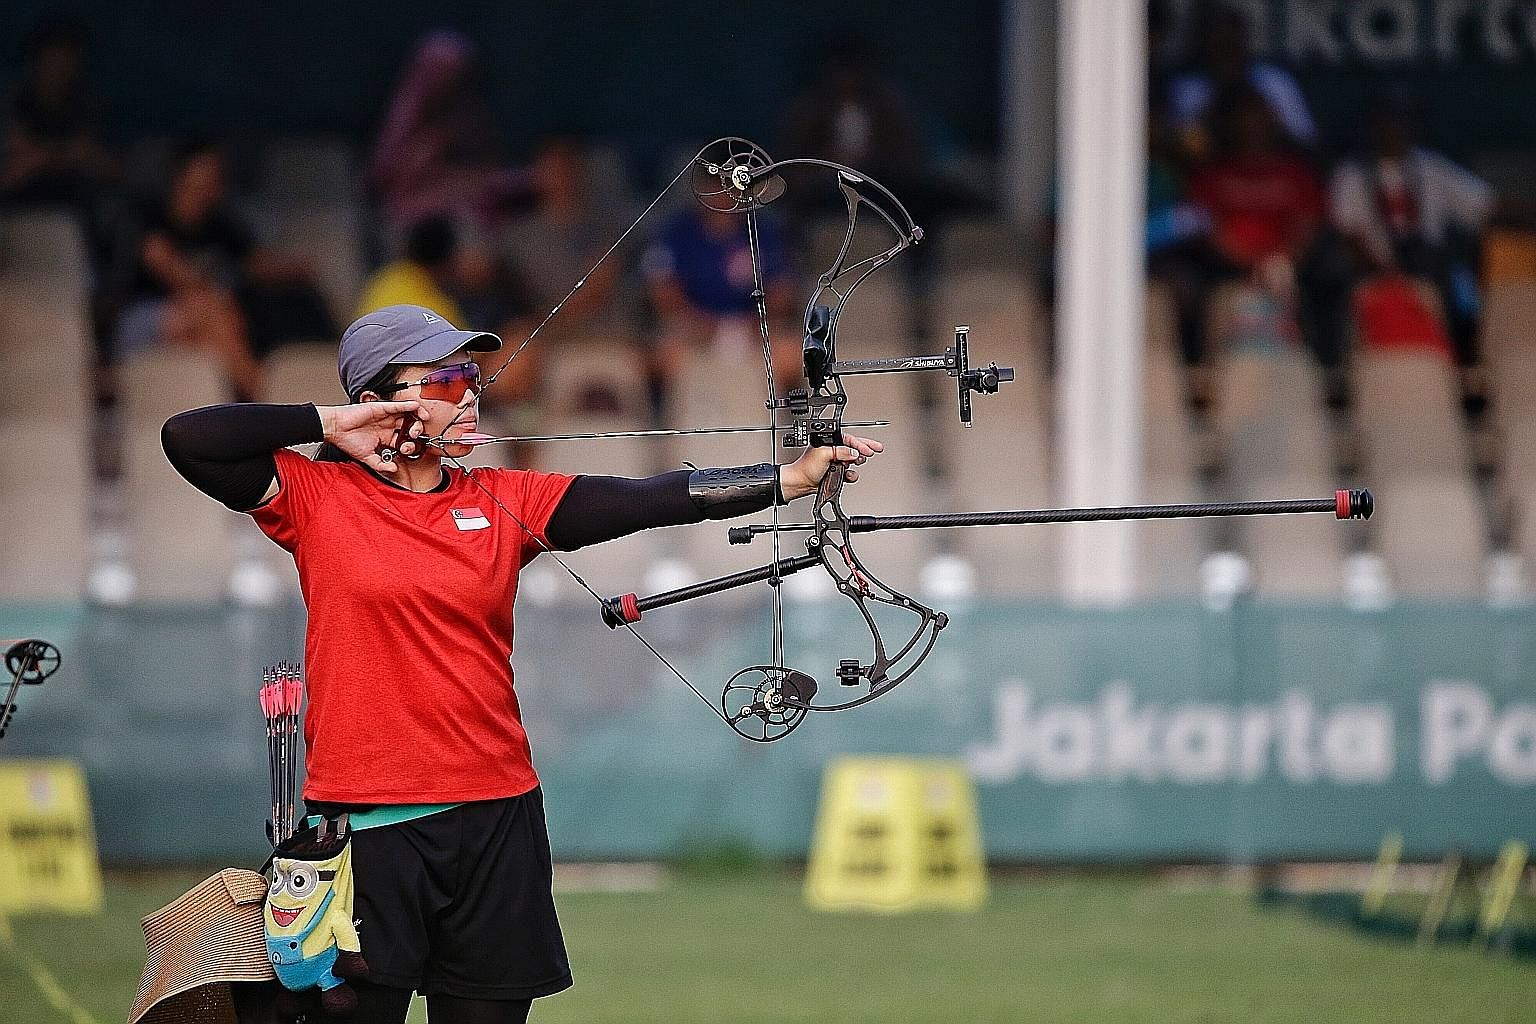 Contessa Loh, who scored two personal bests in the Compound Mixed Team event, Singapore's archery debut at the Asian Games. She and team-mate Alan Lee reached the semi-finals, upsetting 2017 SEA Games gold medallists Malaysia along the way.